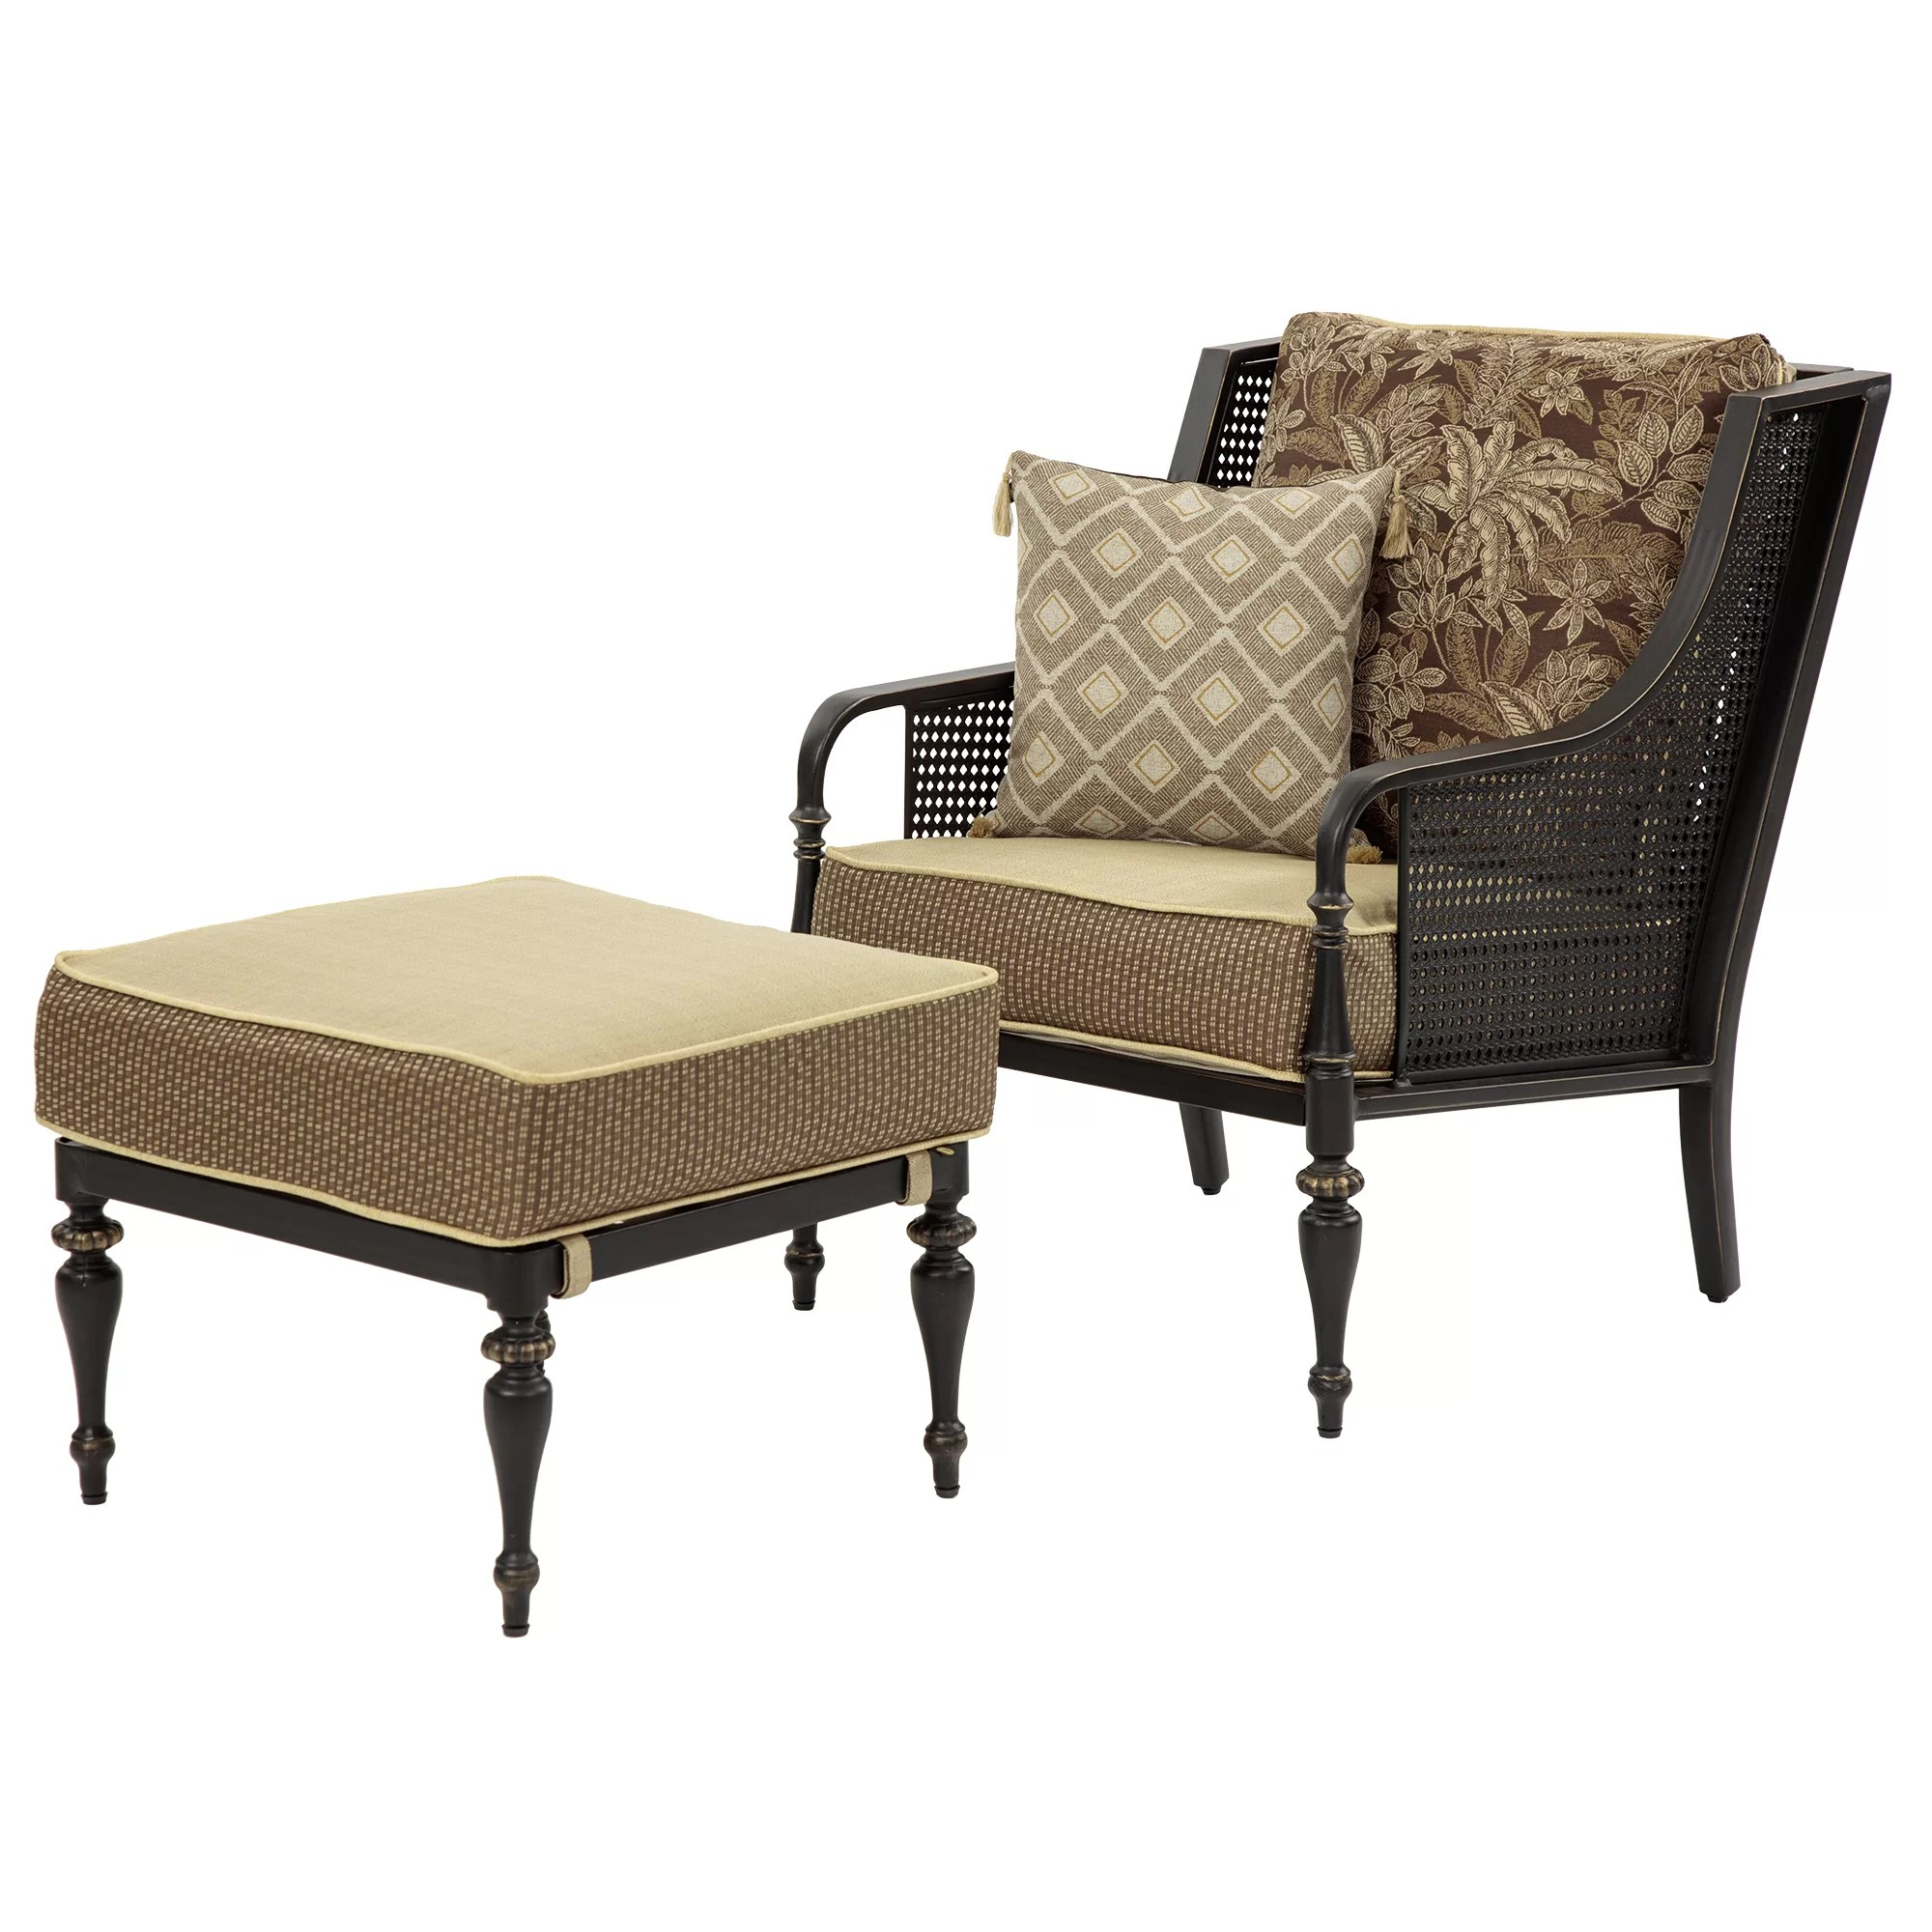 Chair And Ottoman Bombayoutdoors Sherborne Arm Chair And Ottoman And Reviews